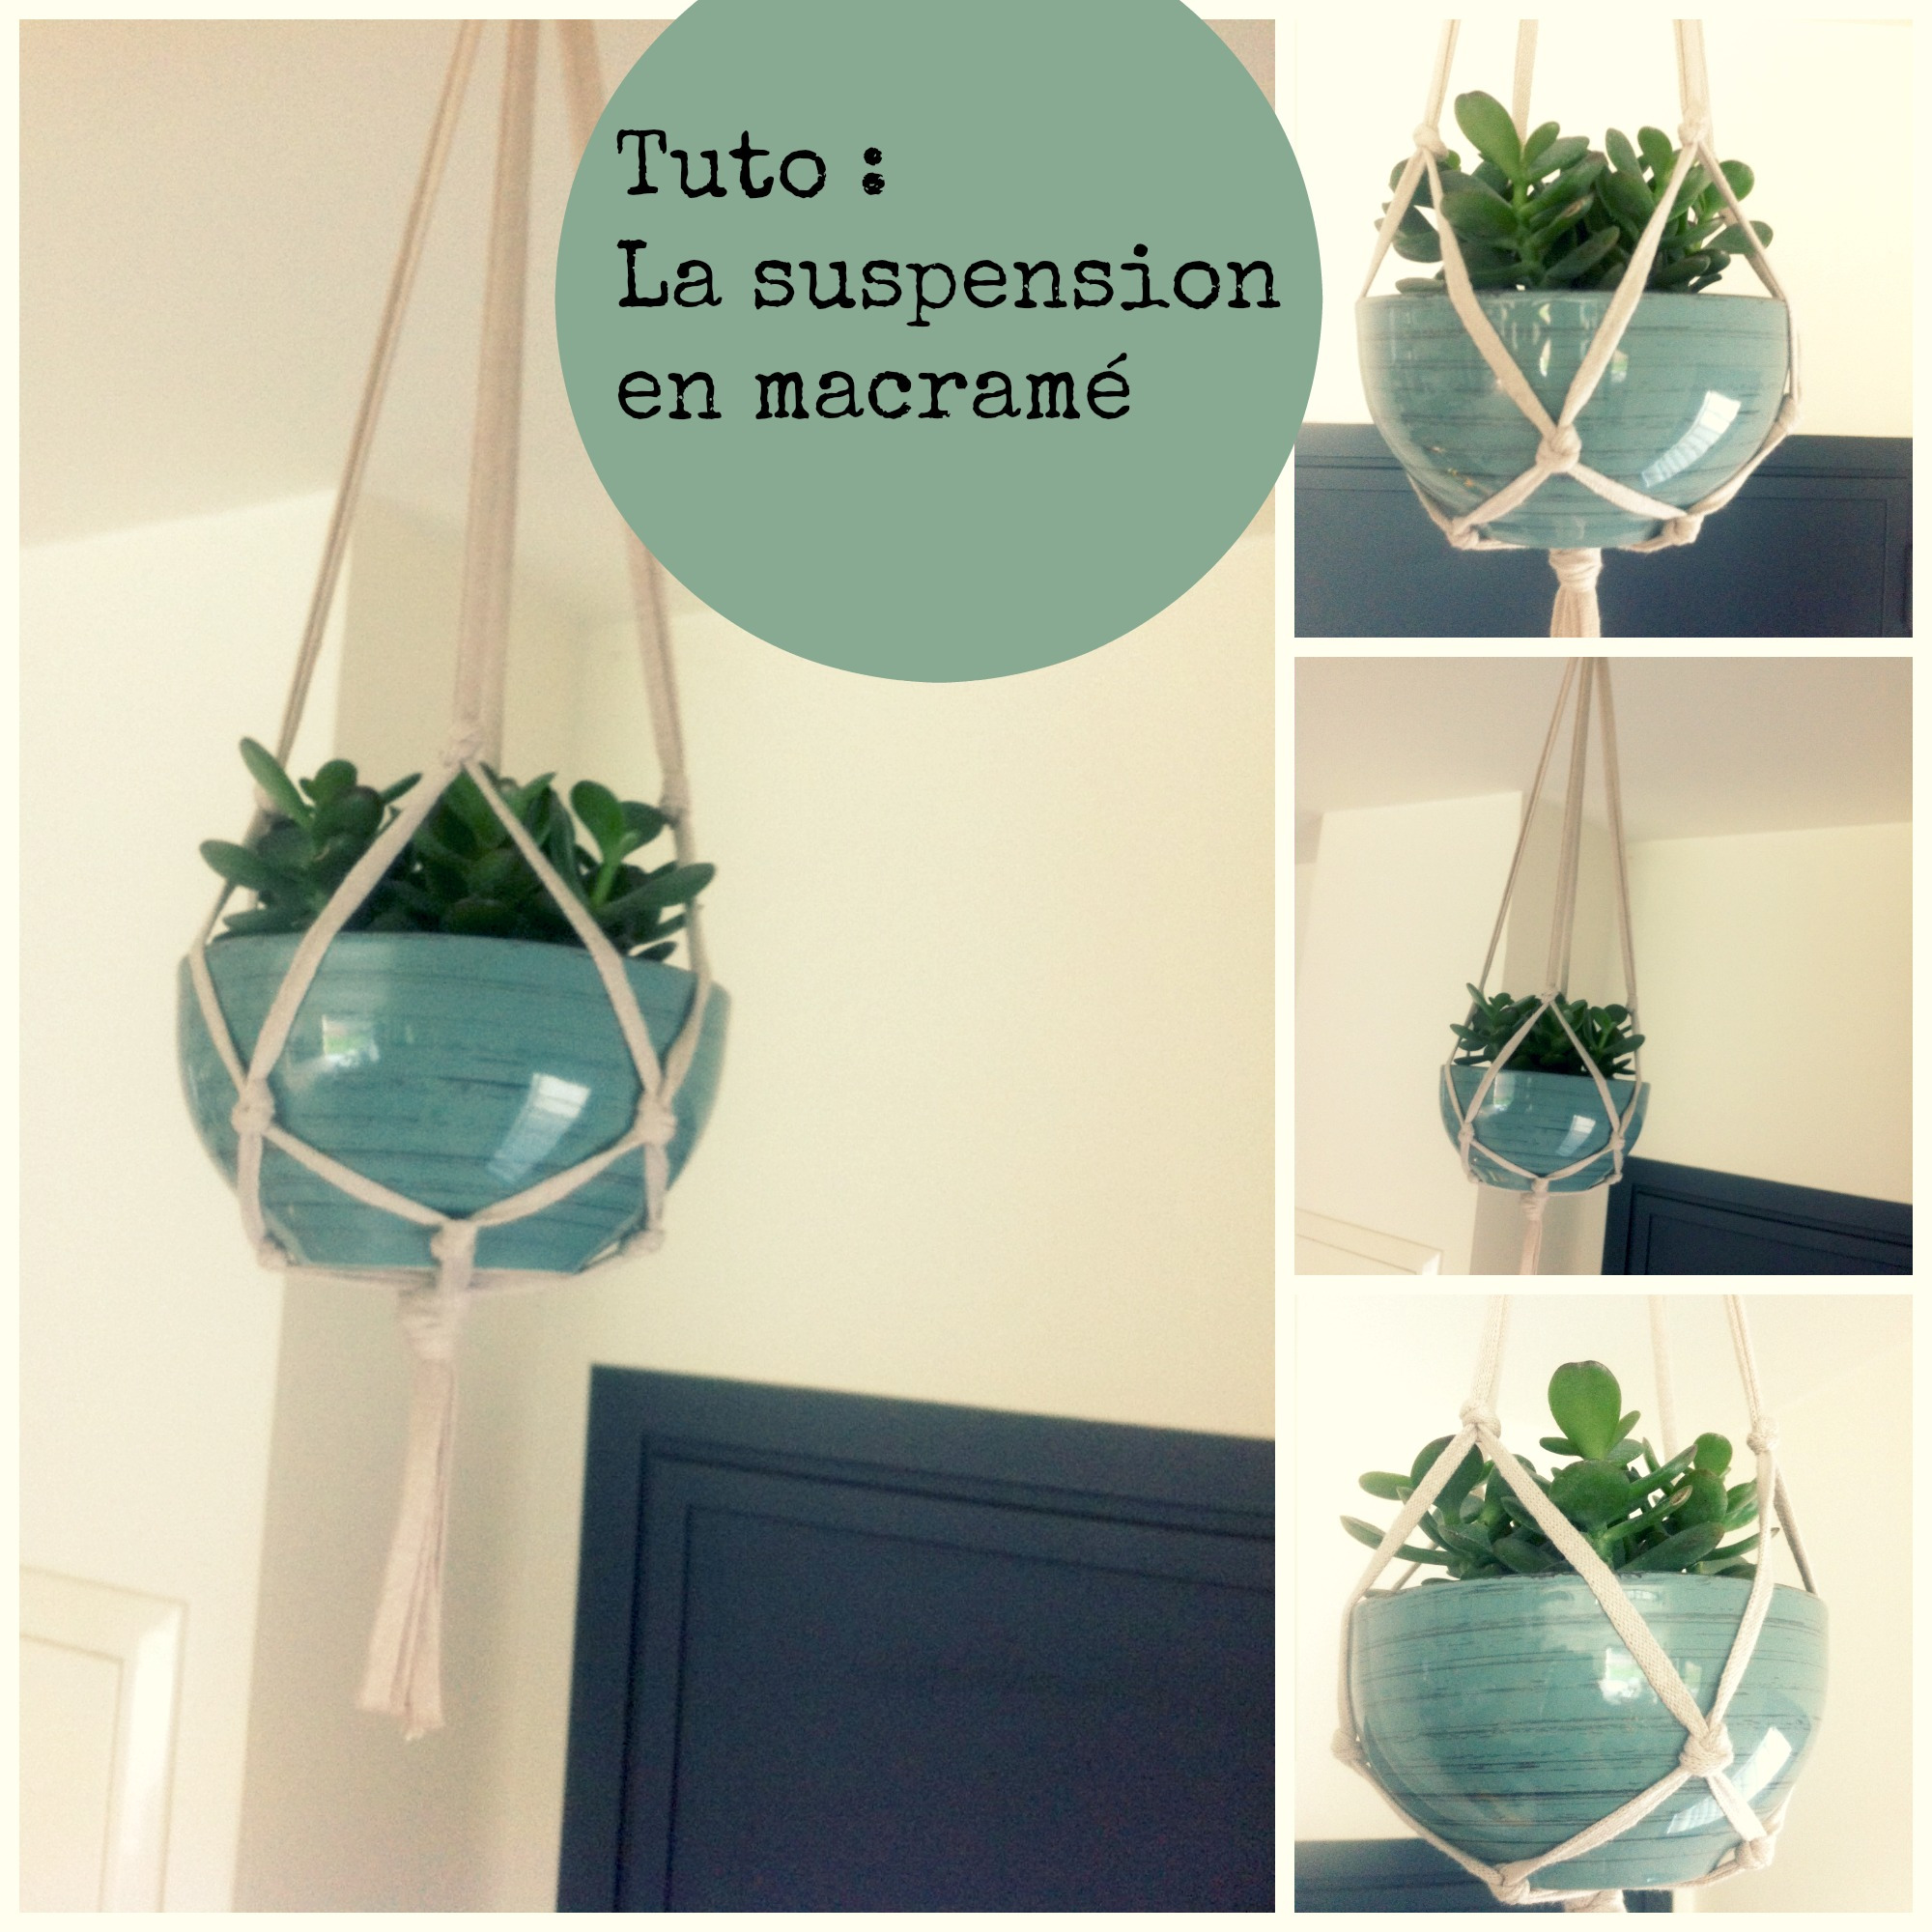 Suspension macram le tuto - Suspension pot de fleur macrame ...